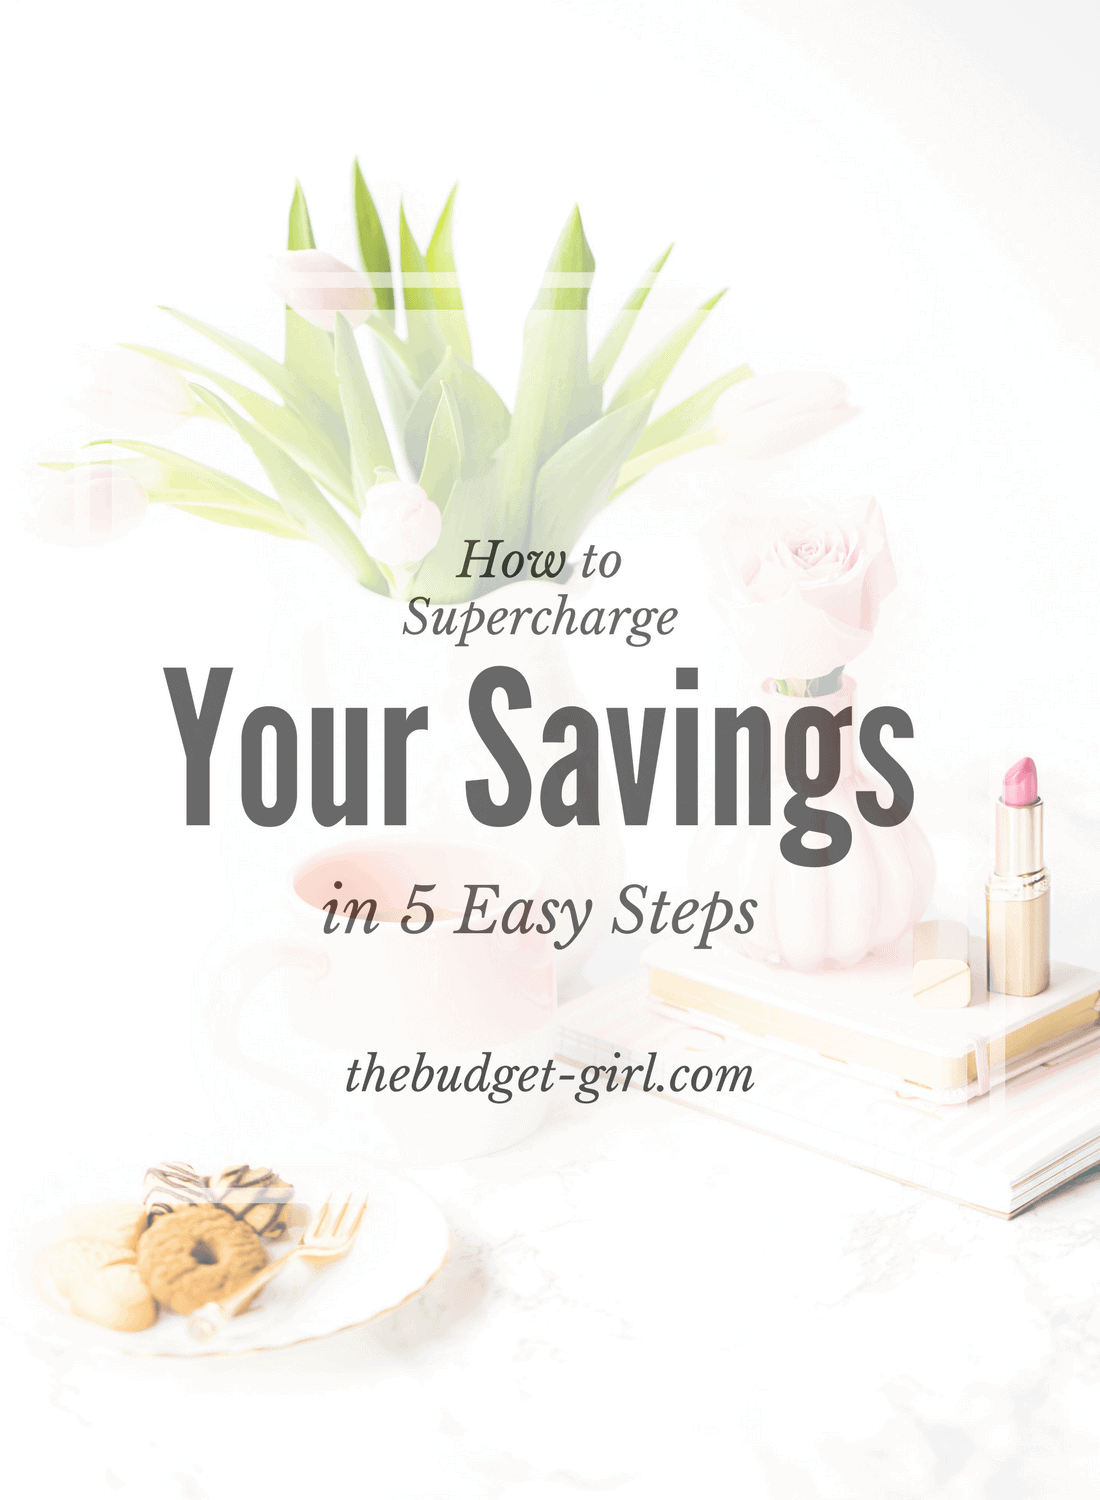 How to Supercharge Your Savings 5 Easy Steps